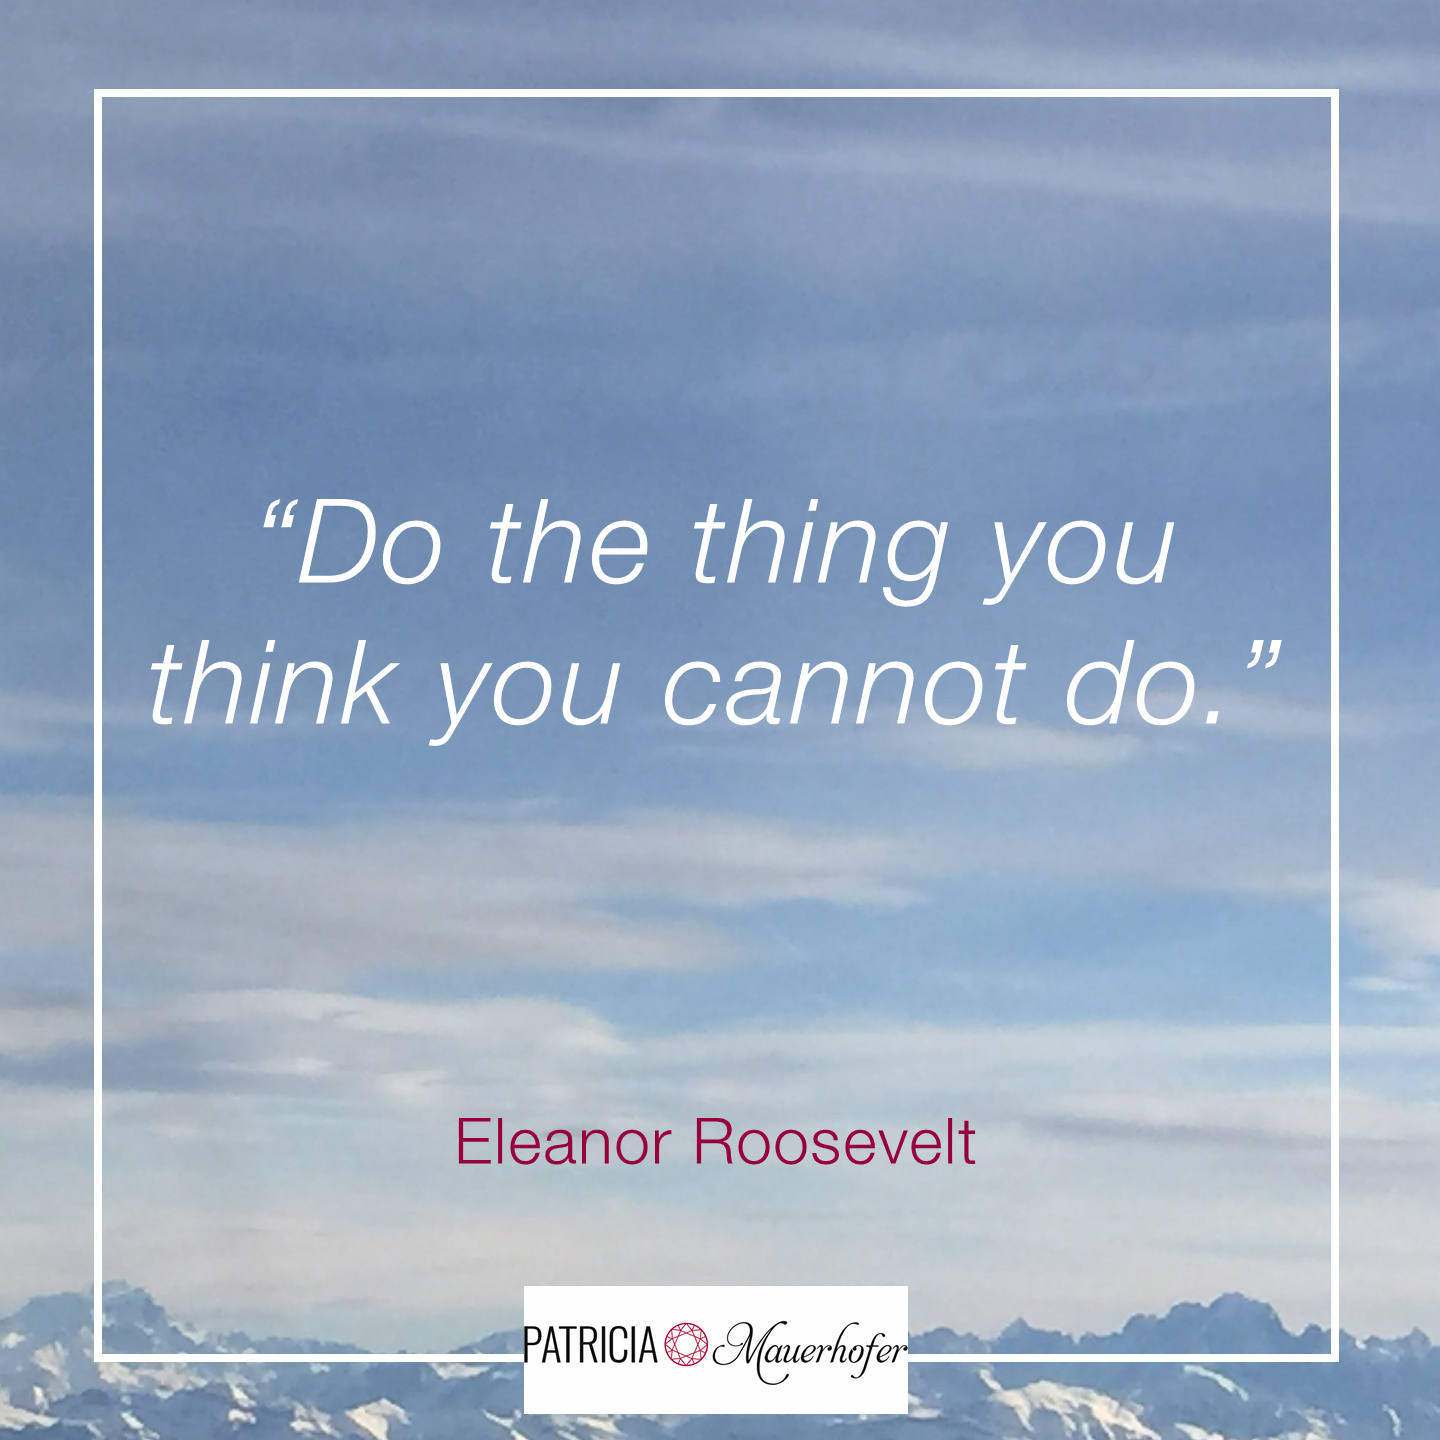 E Roosevelt Quote Do the thing